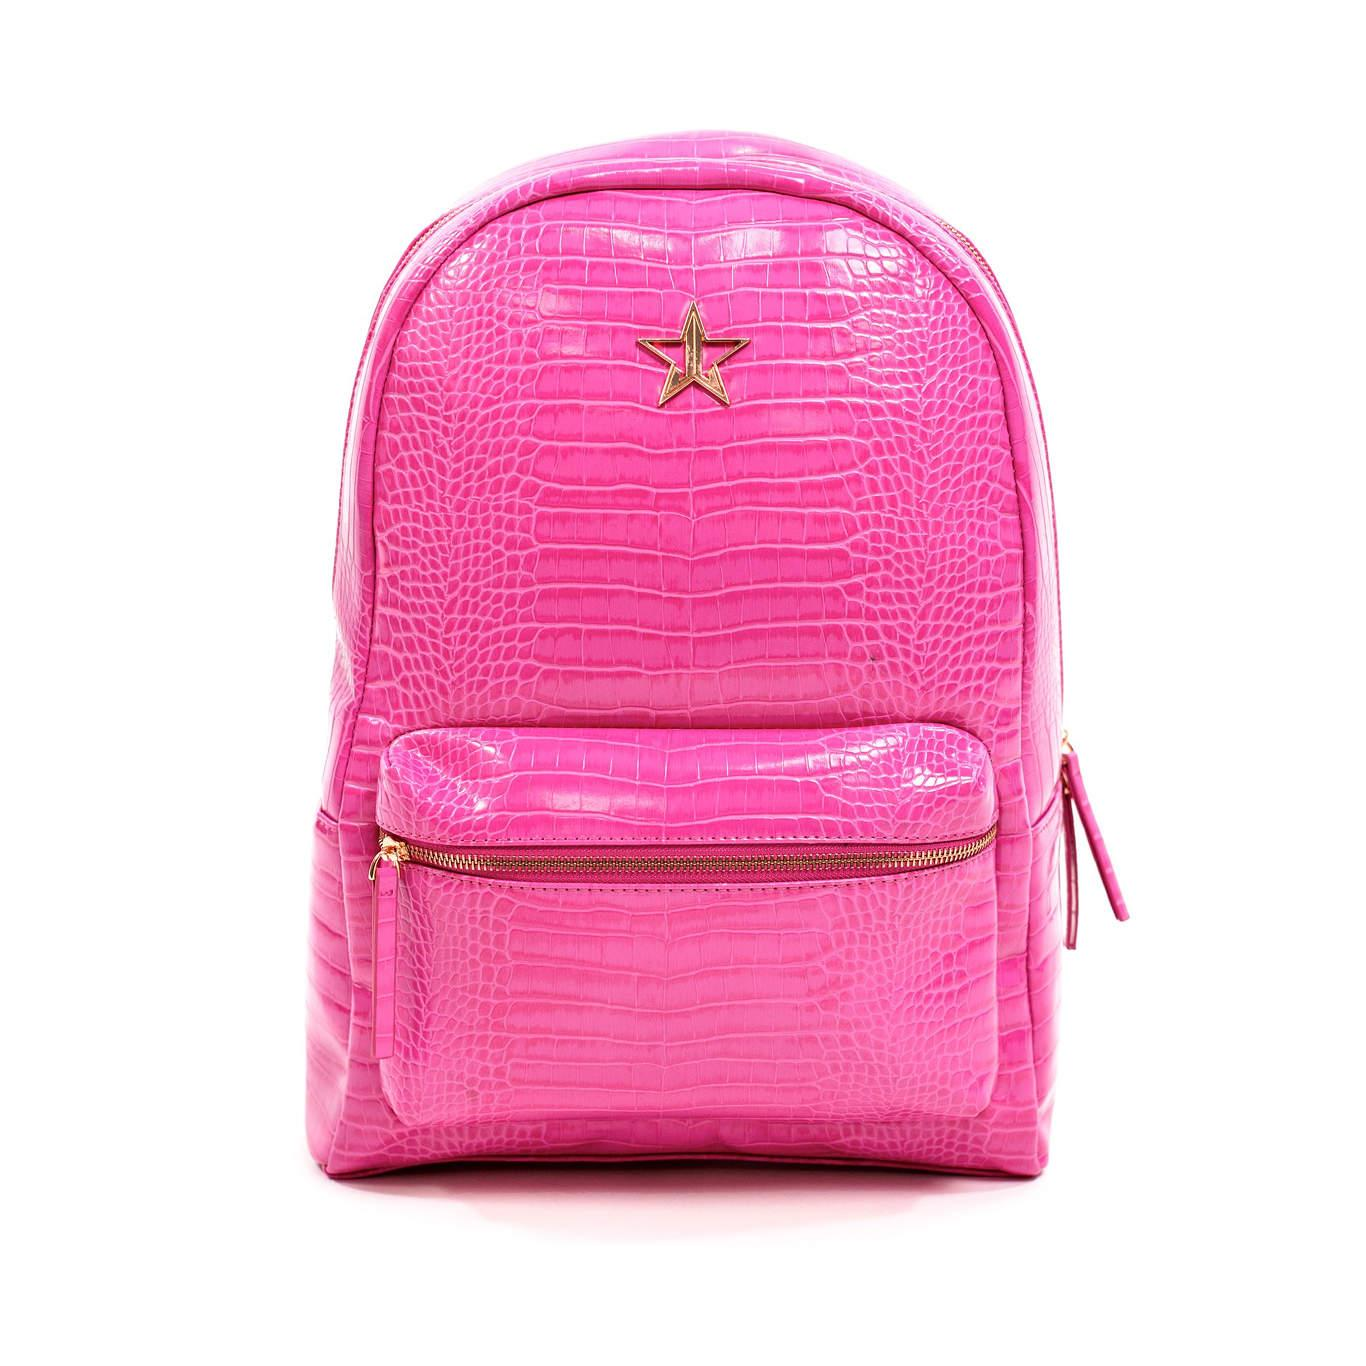 Jeffree Star Cosmetics Pink Religion Collection Pink Religion Backpack